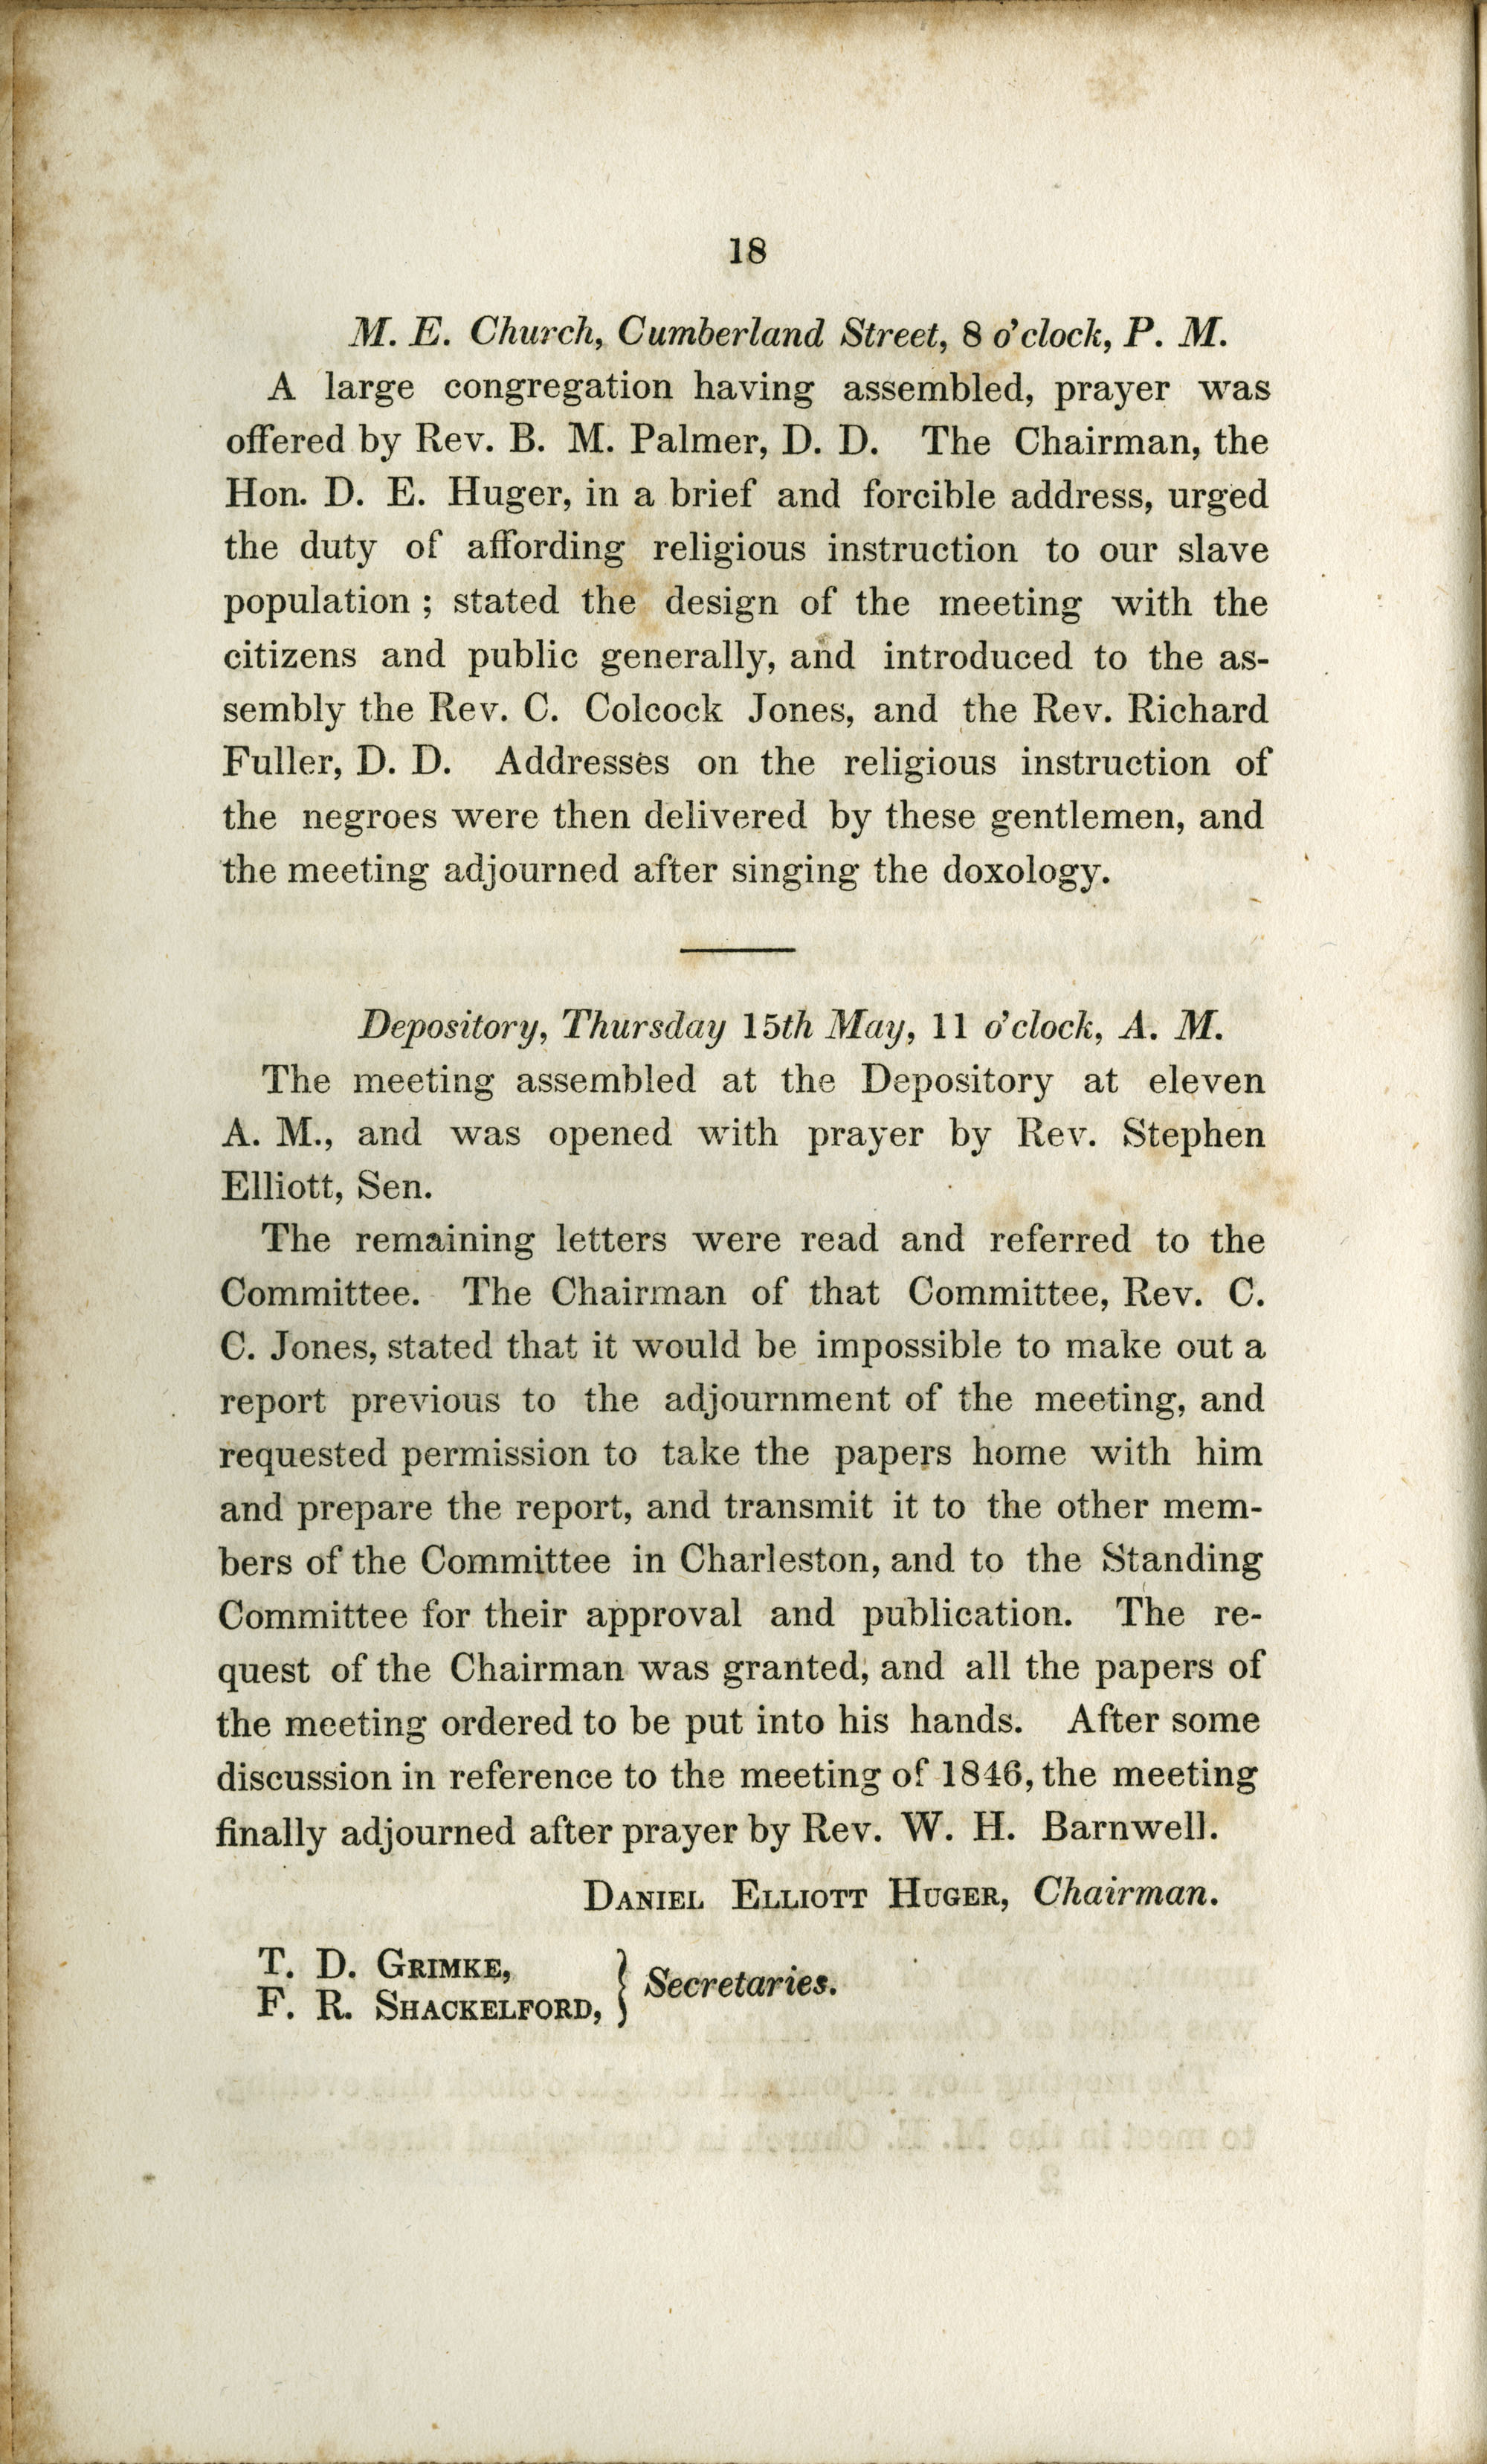 Proceedings of the Meeting, Page 18